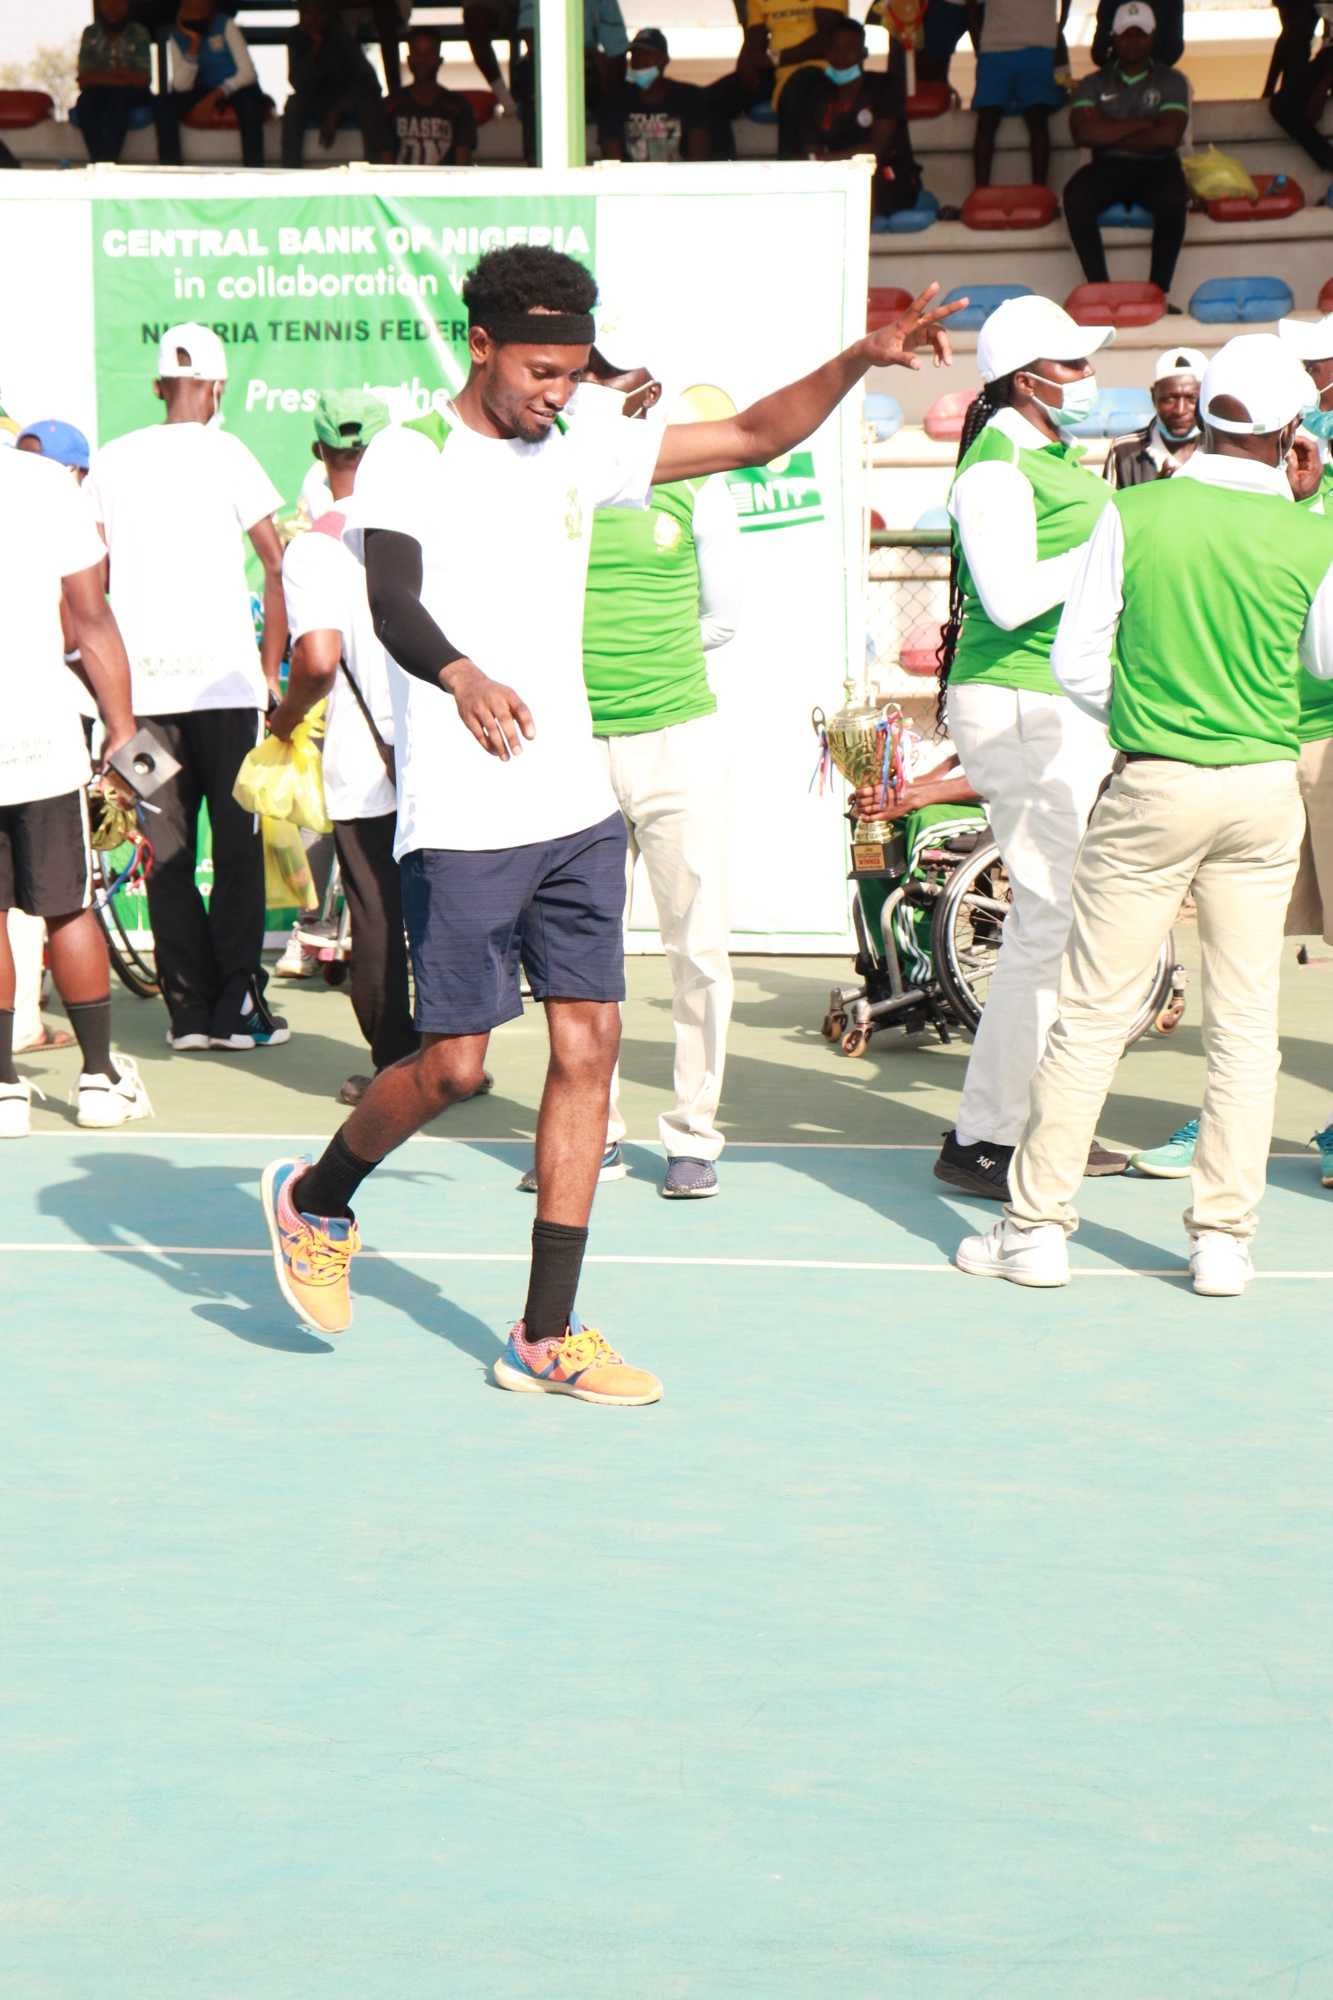 Imeh in a joyous mood to collect his trophy